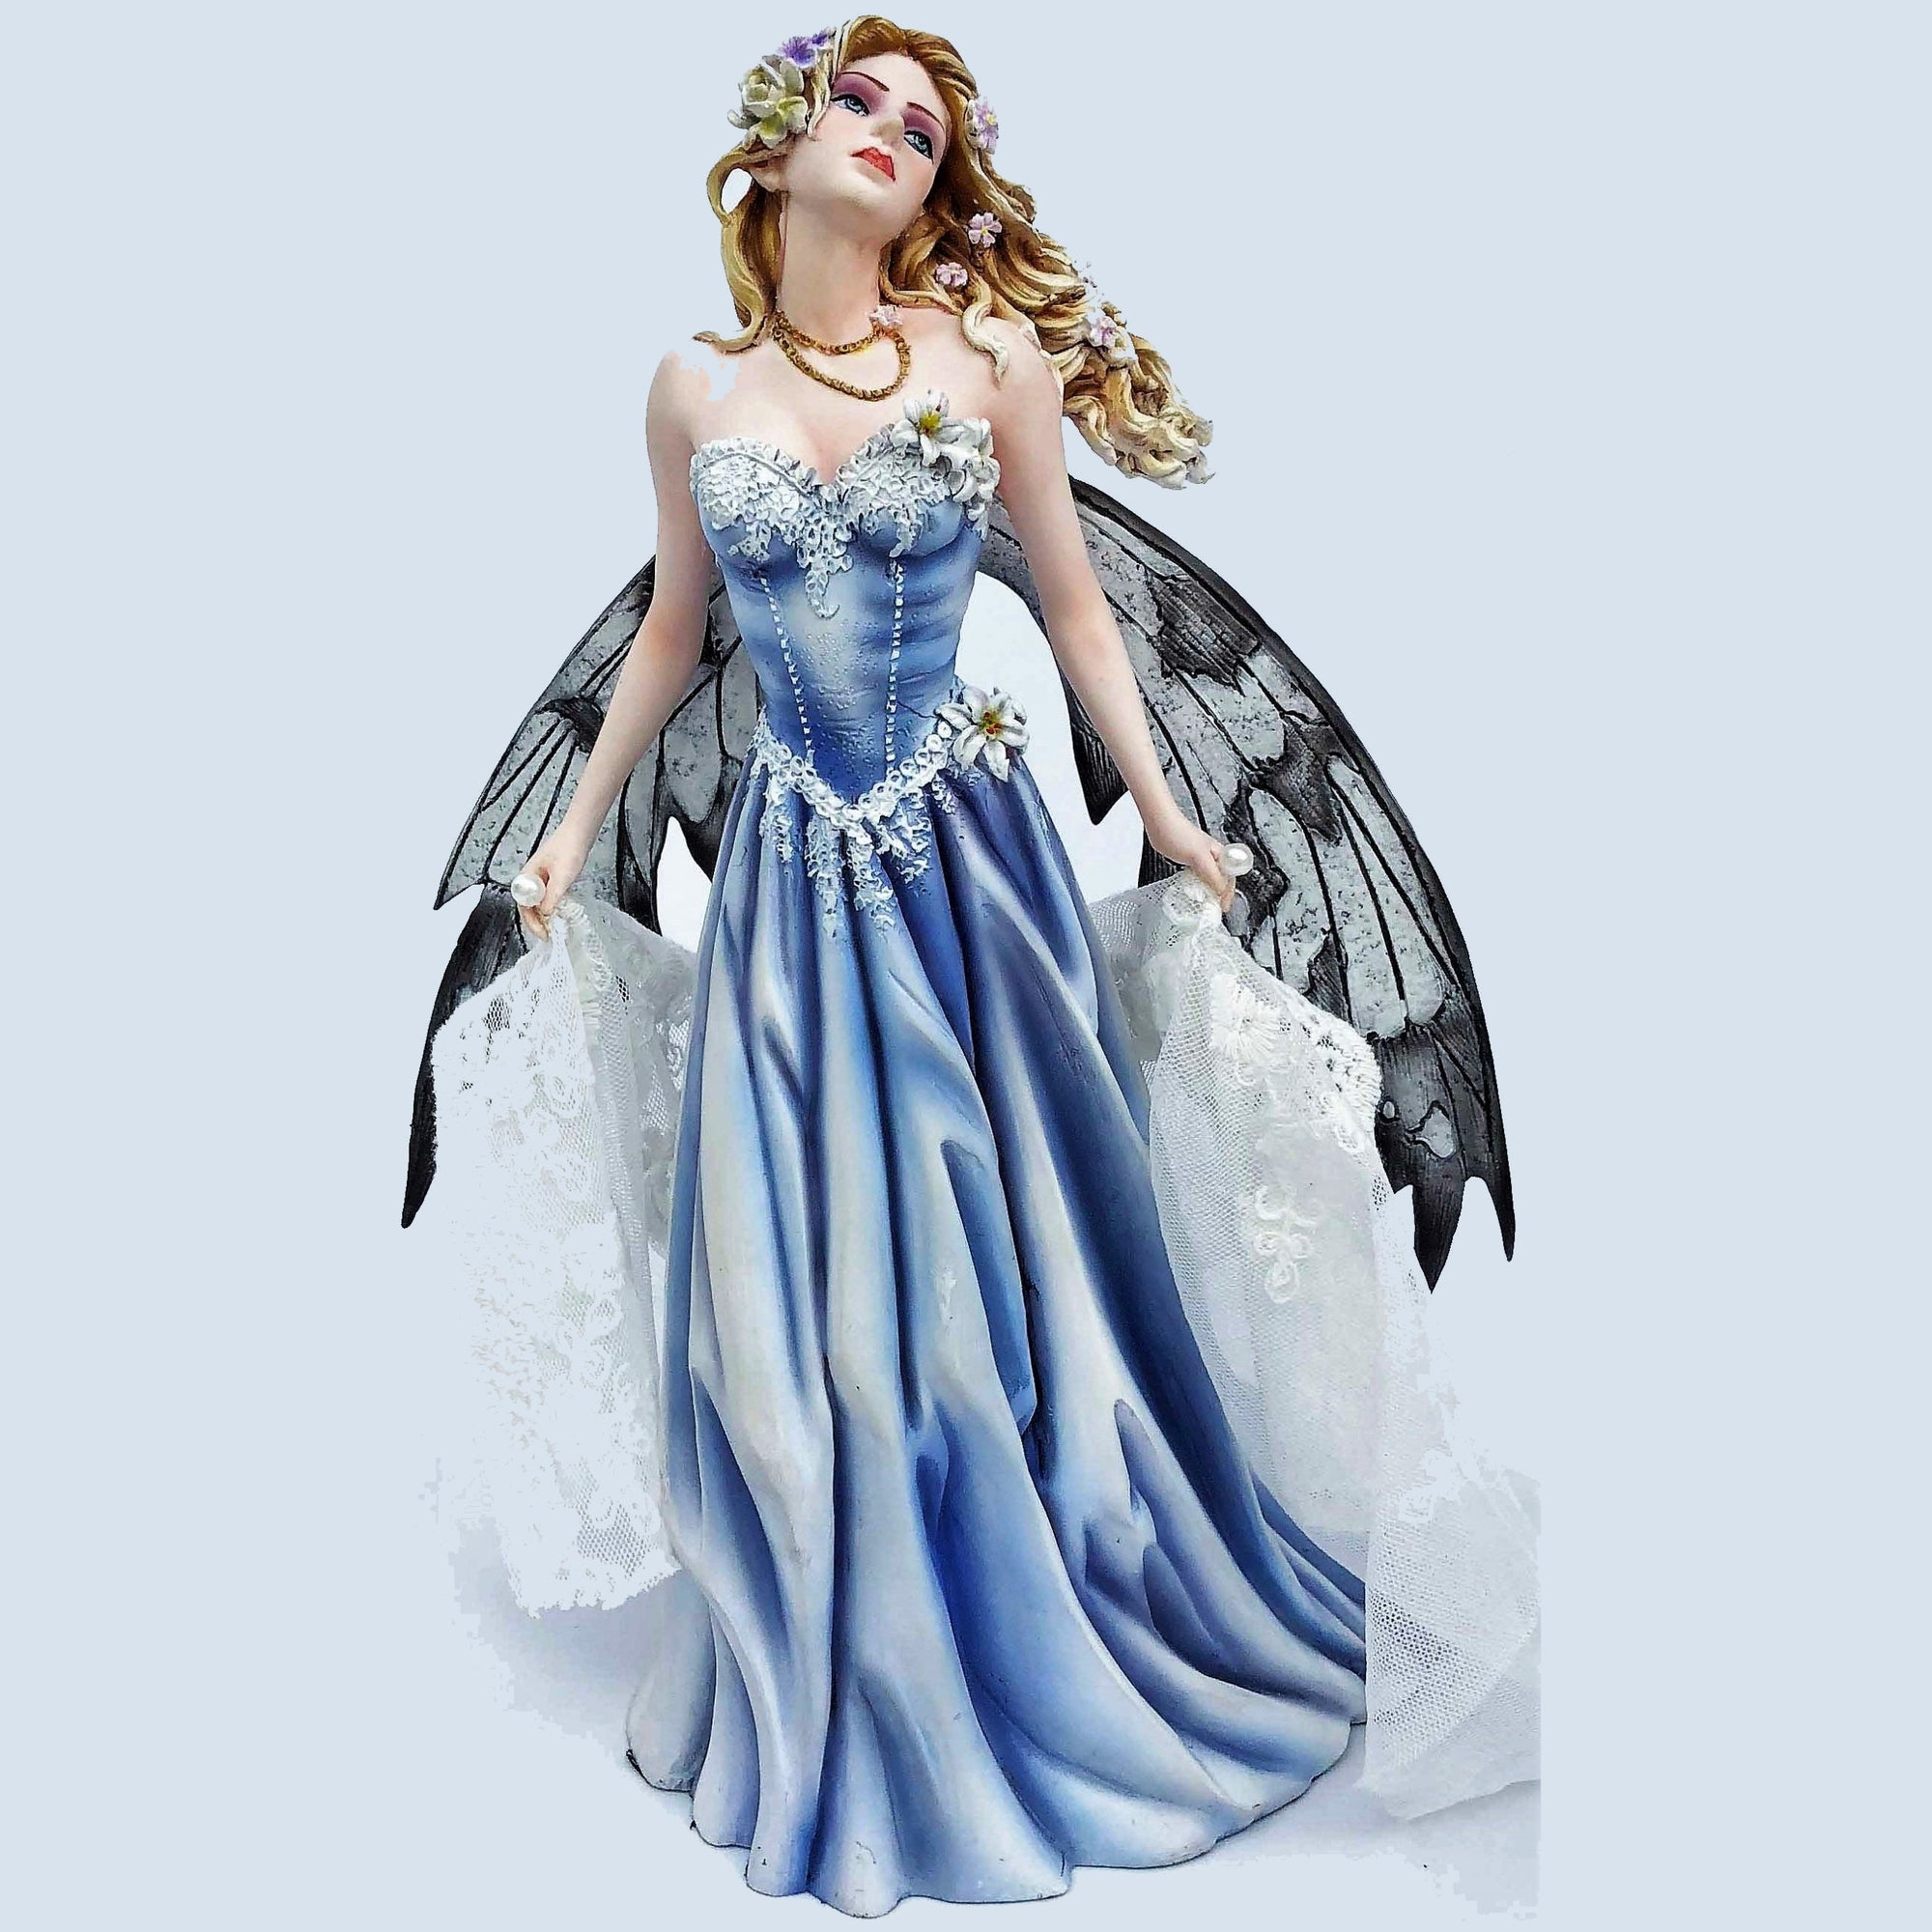 Flower Fairy in Blue Dress - Rivendell Shop